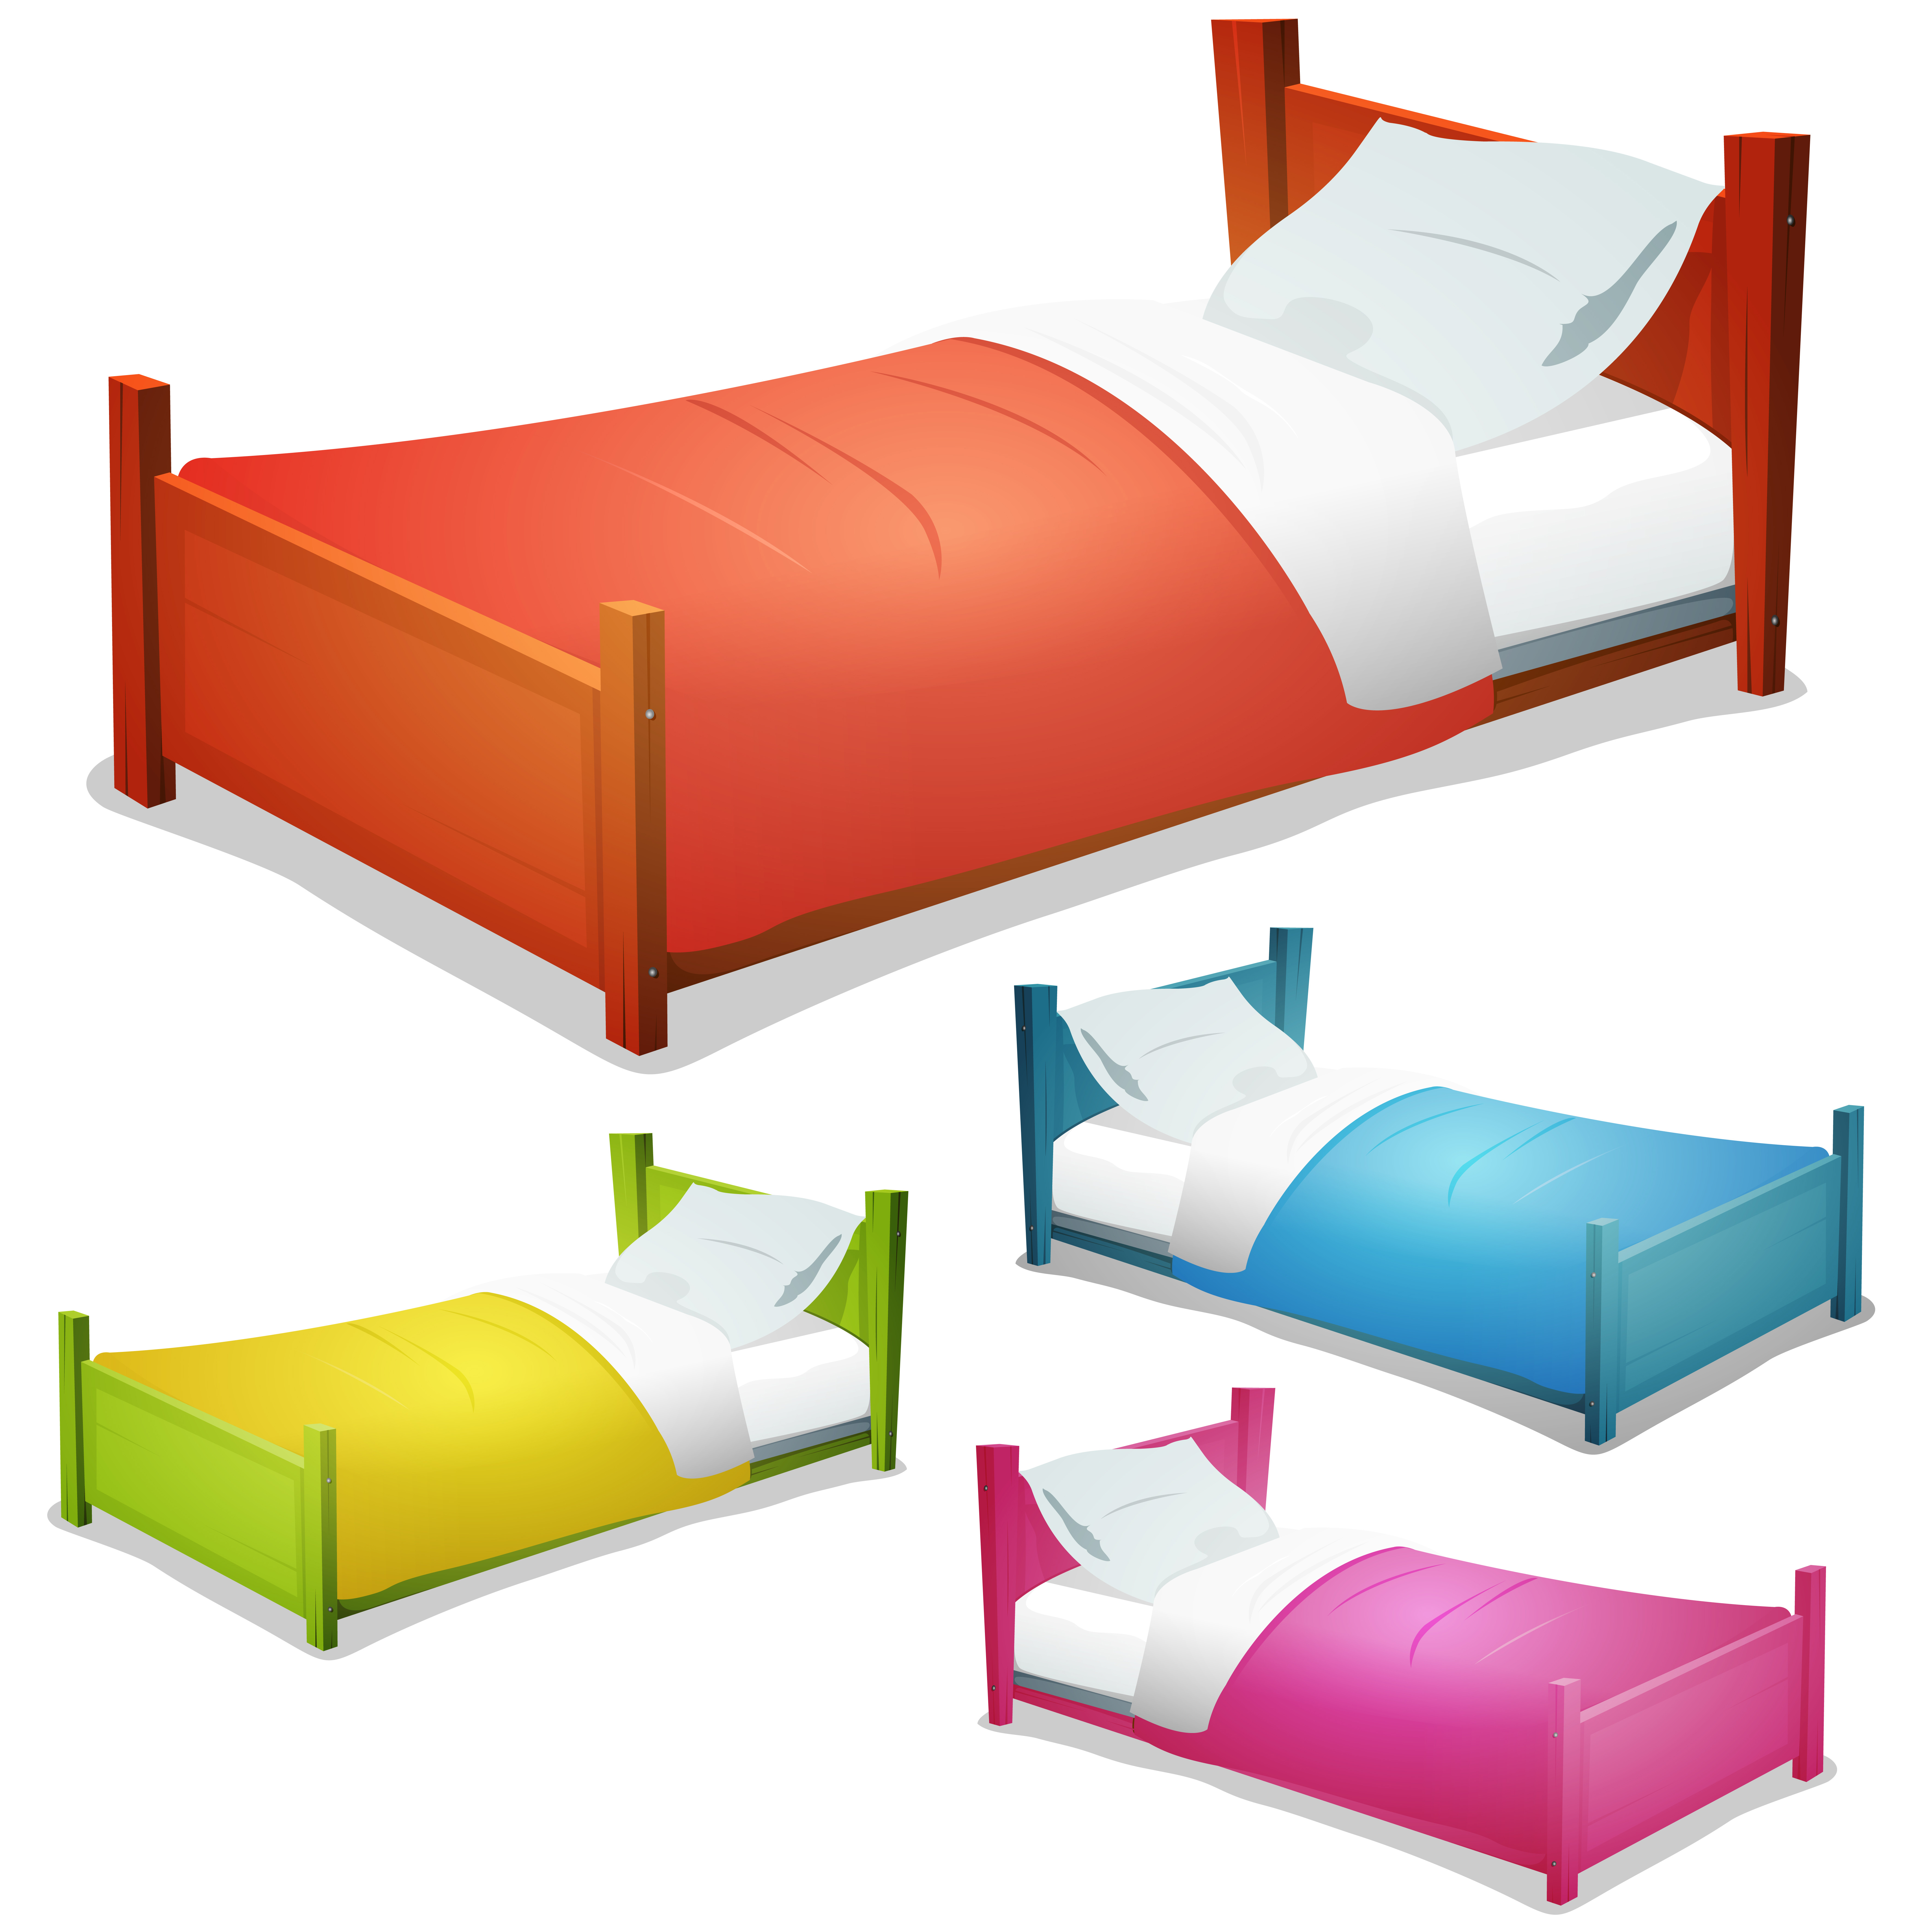 Cartoon Bed Set Download Free Vectors Clipart Graphics Vector Art Bed cartoon 2 of 146. vecteezy